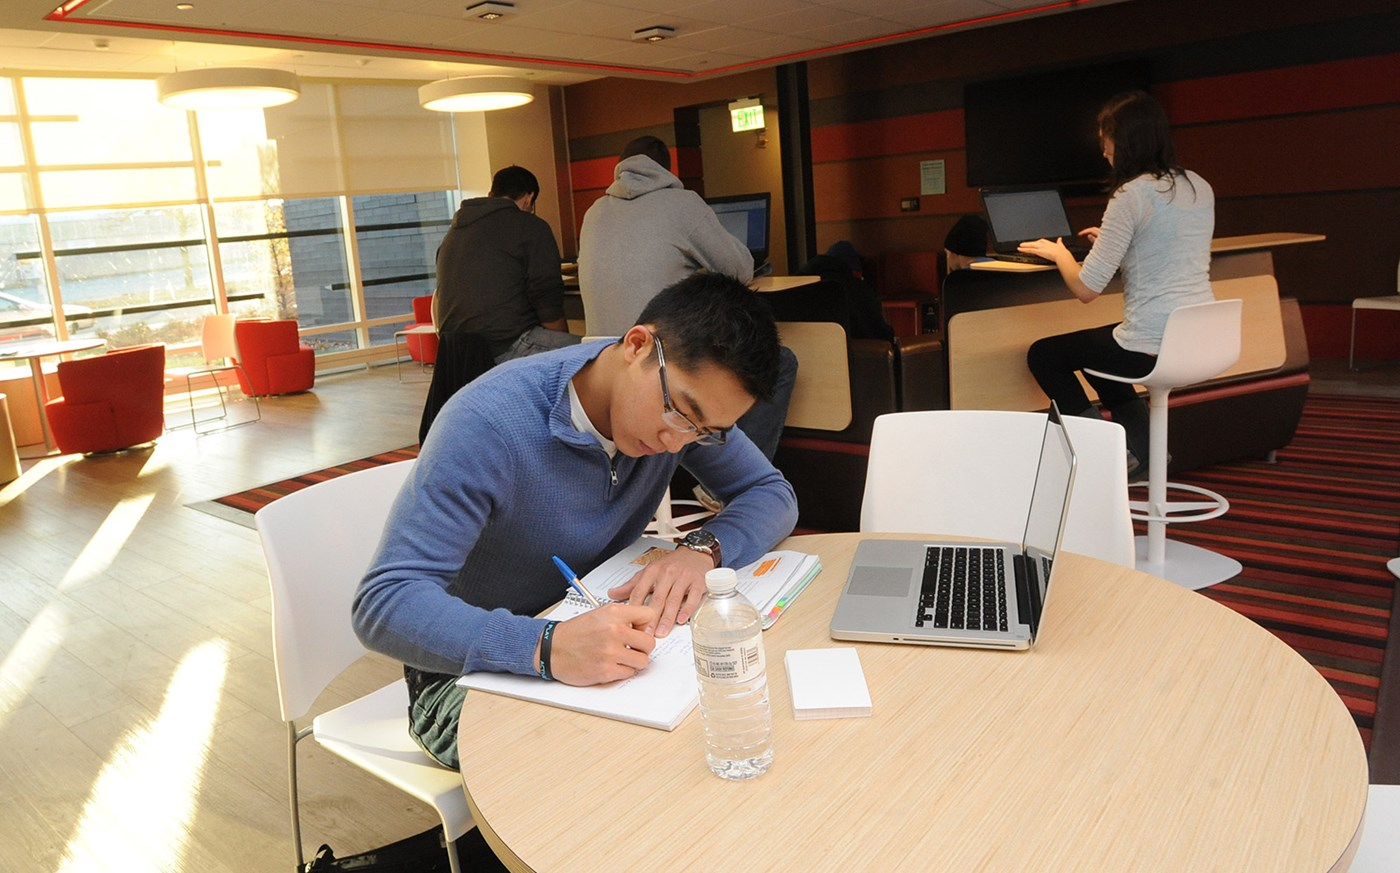 Umass Lowell students in University Suites building, studying and doing homework in the common room.